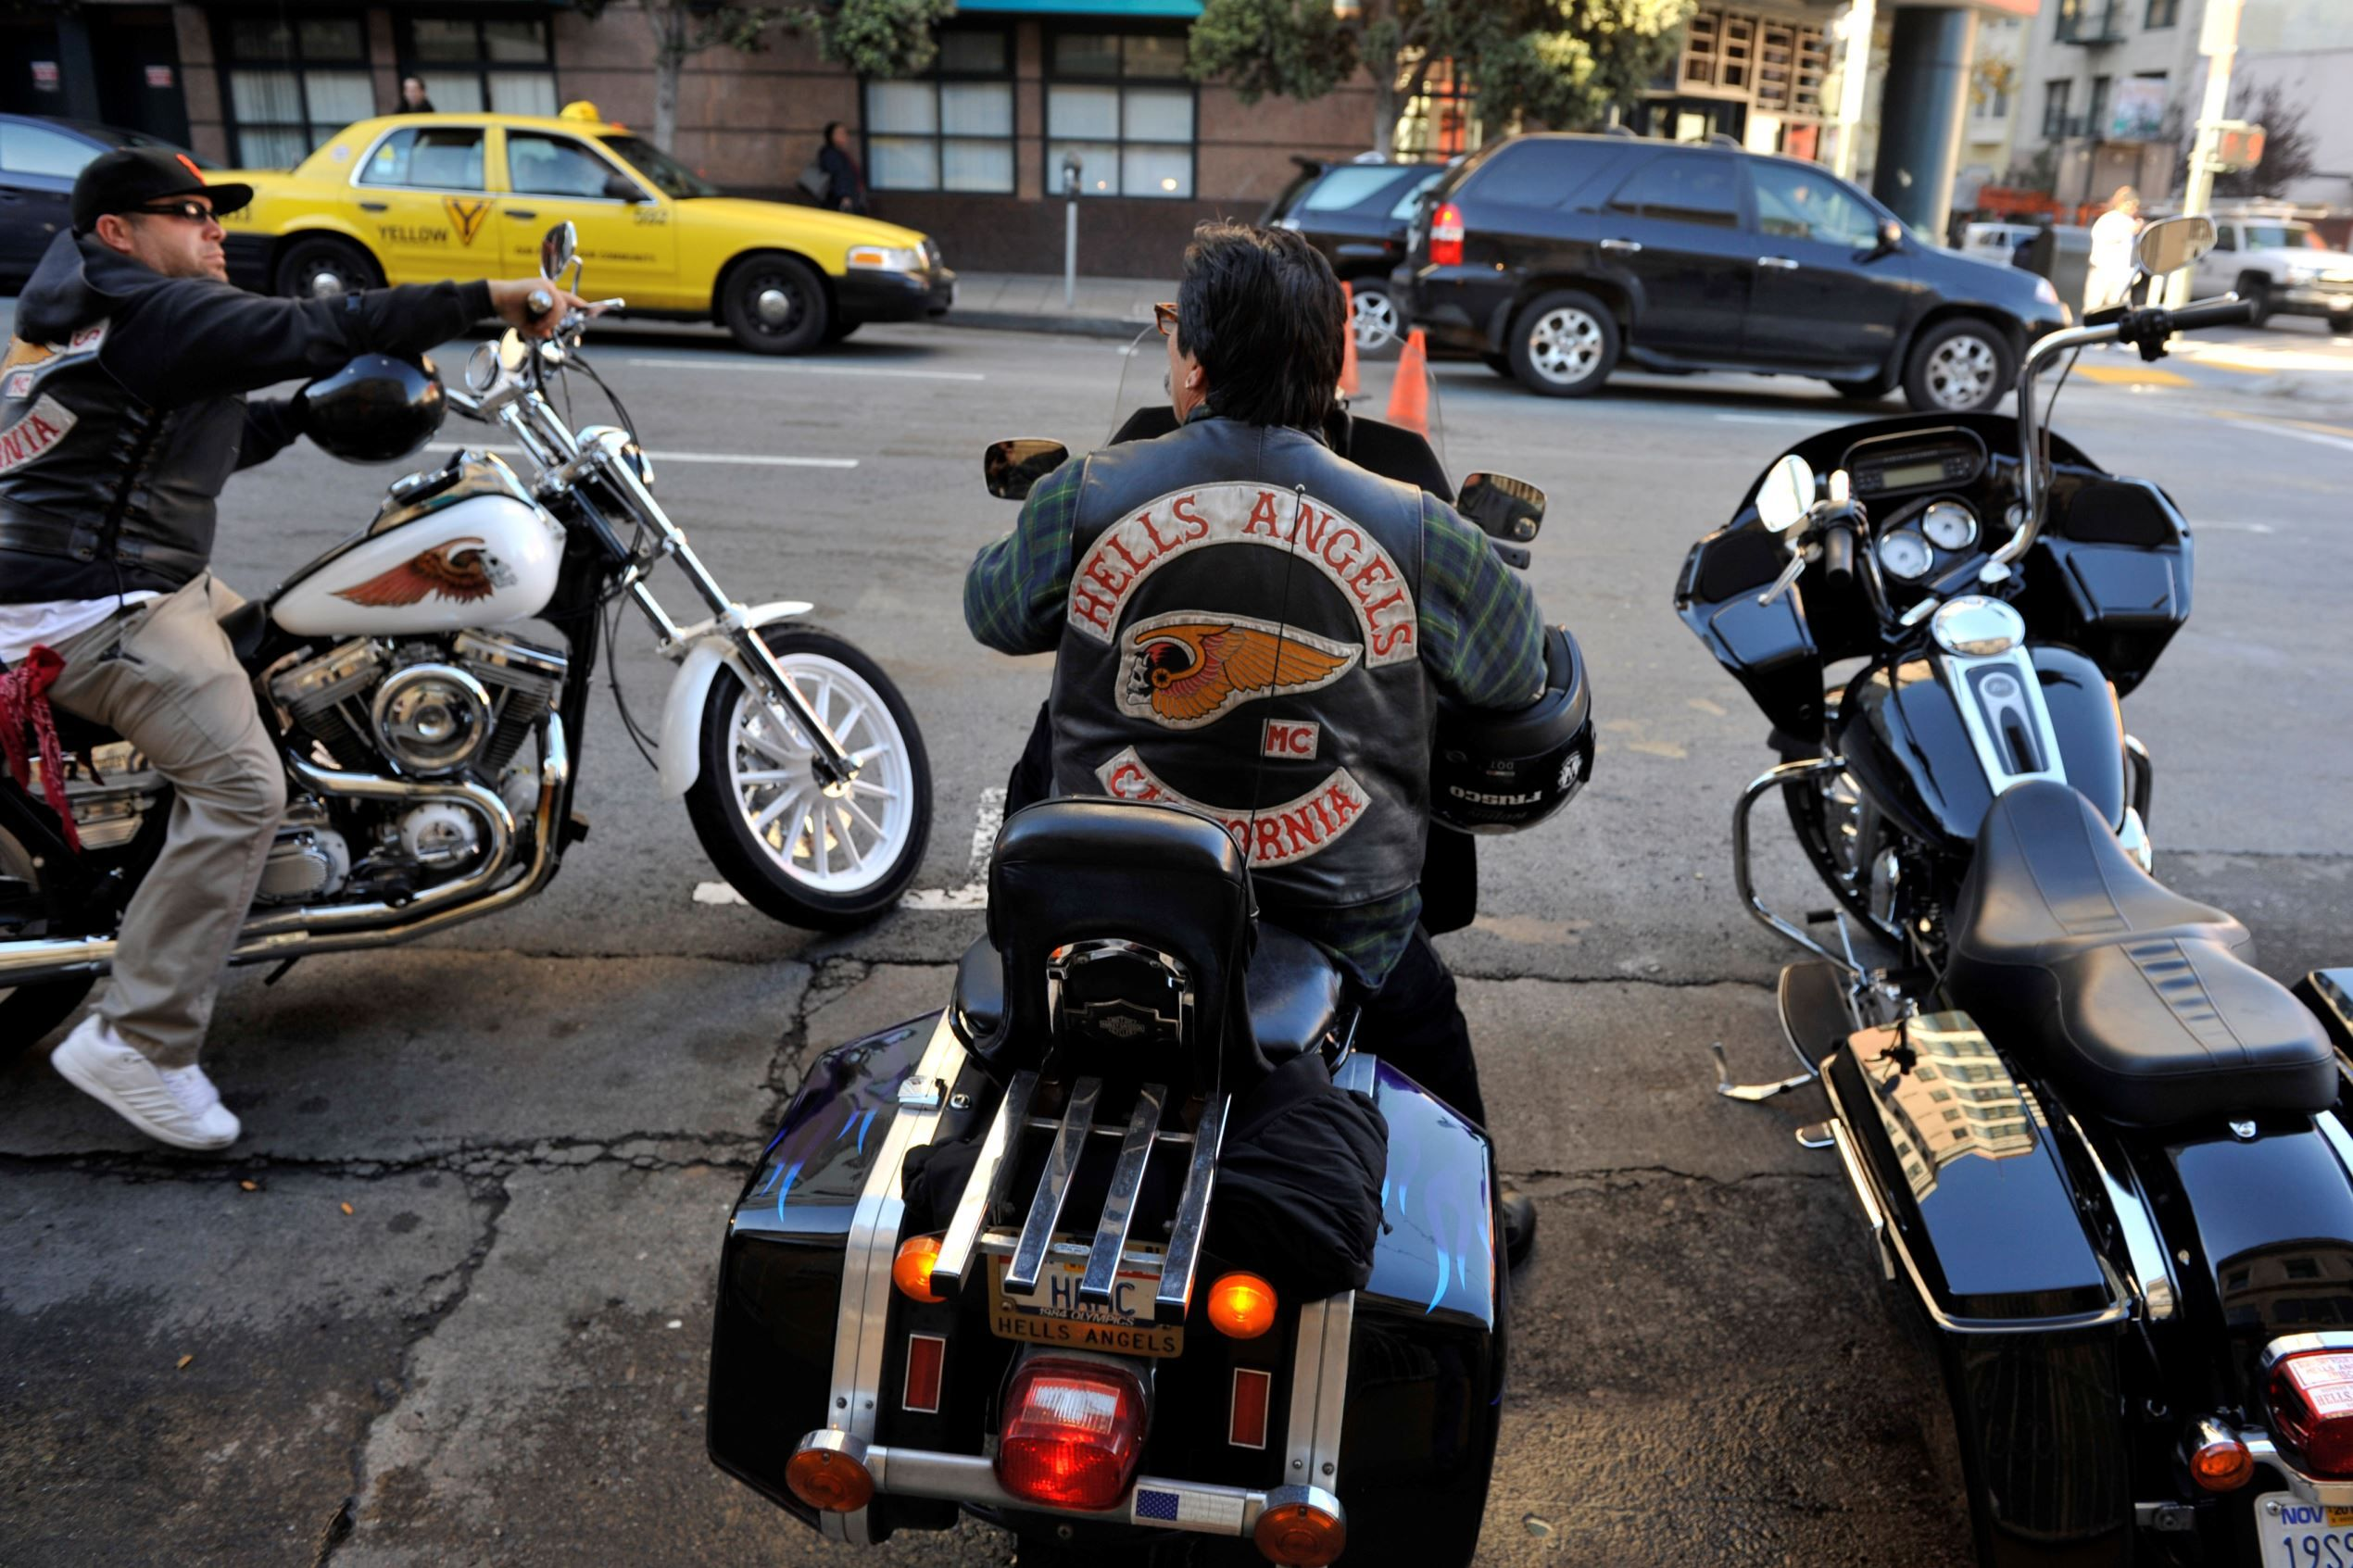 Members of the San Francisco chapter of the Hells Angels motorcycle